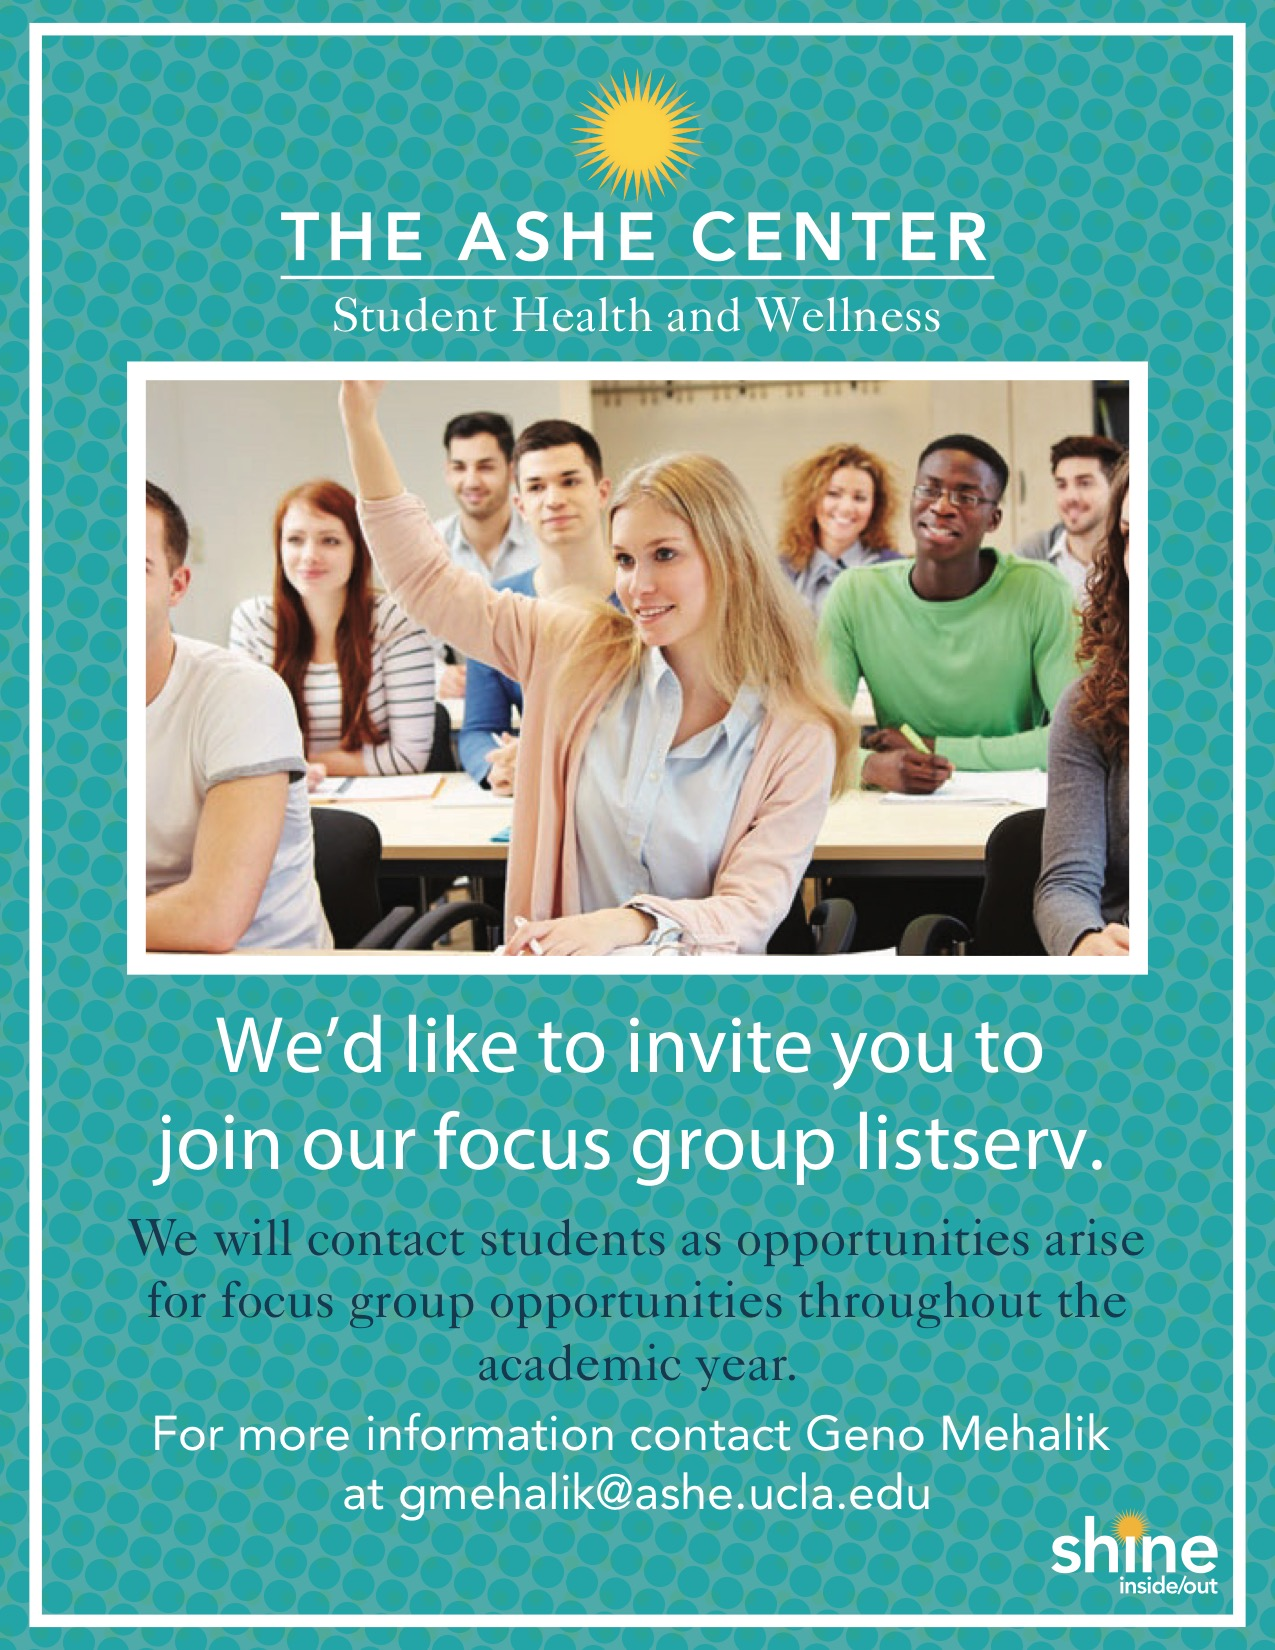 Ashe Center Student Health Focus Groups